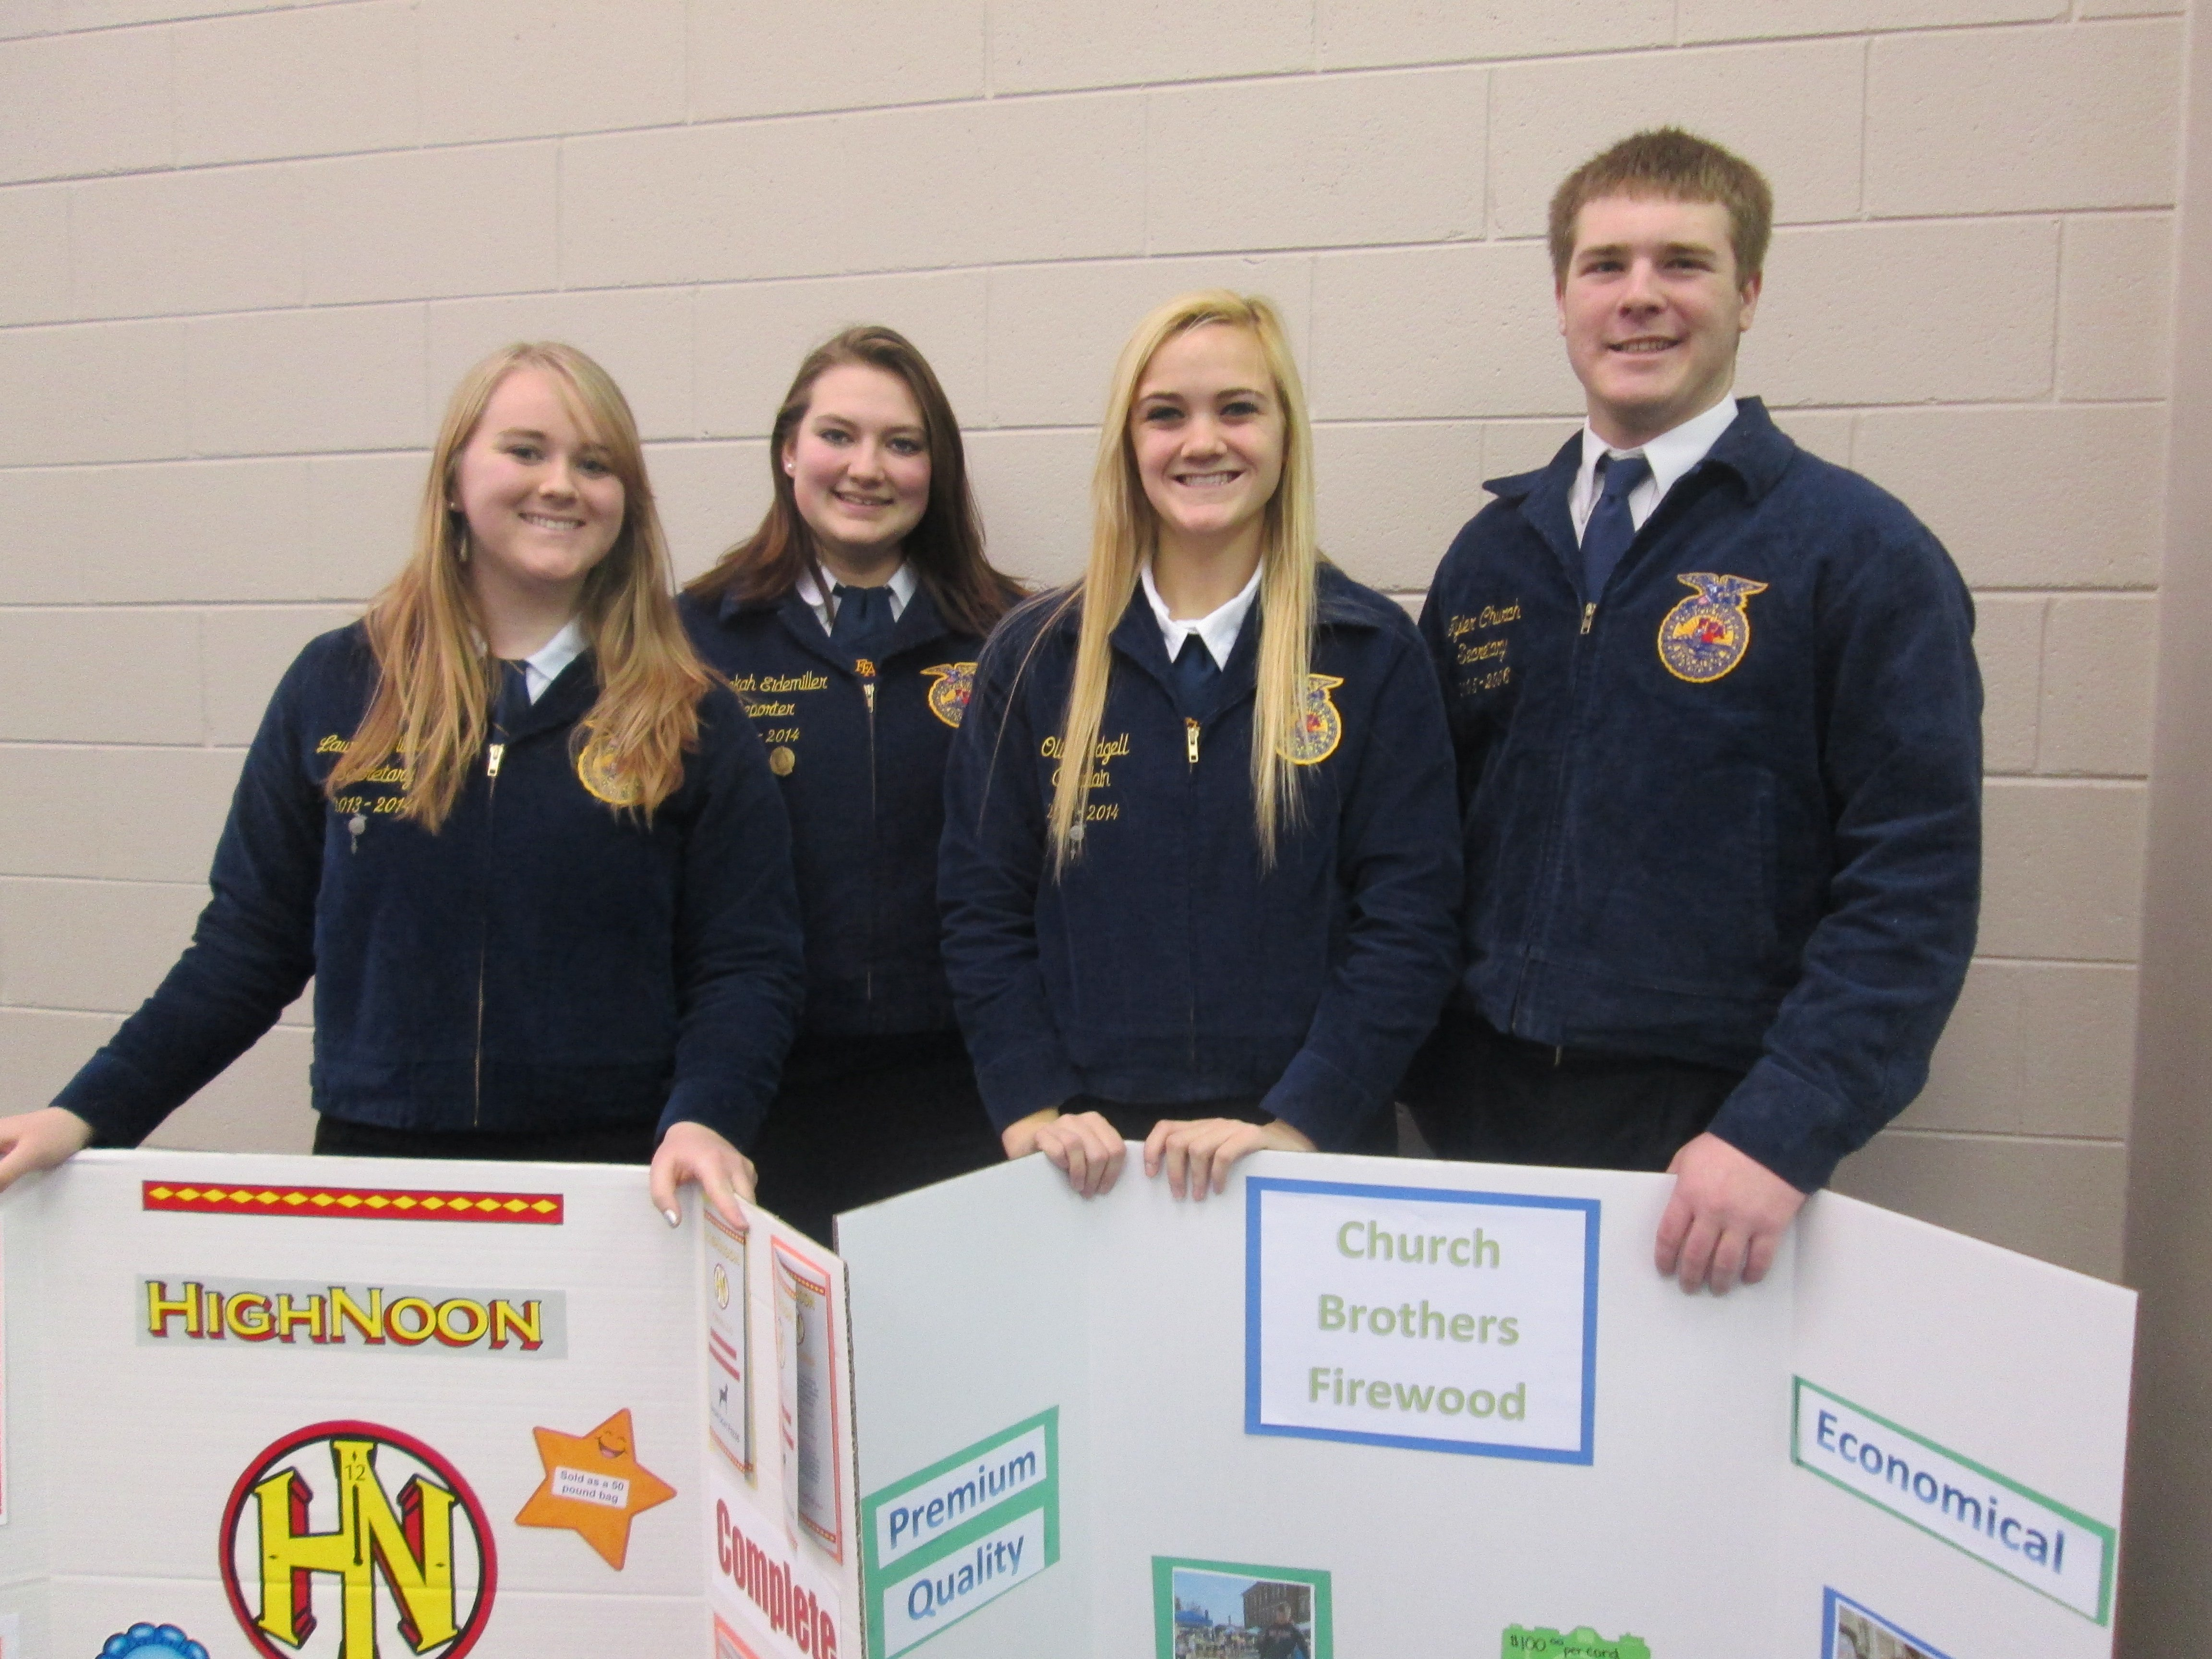 bb81660b6f2e Recently several members of the Miami East-MVCTC FFA Chapter competed in  the State Agricultural Sales Contest held at Tolles Technical Center, Plain  City.